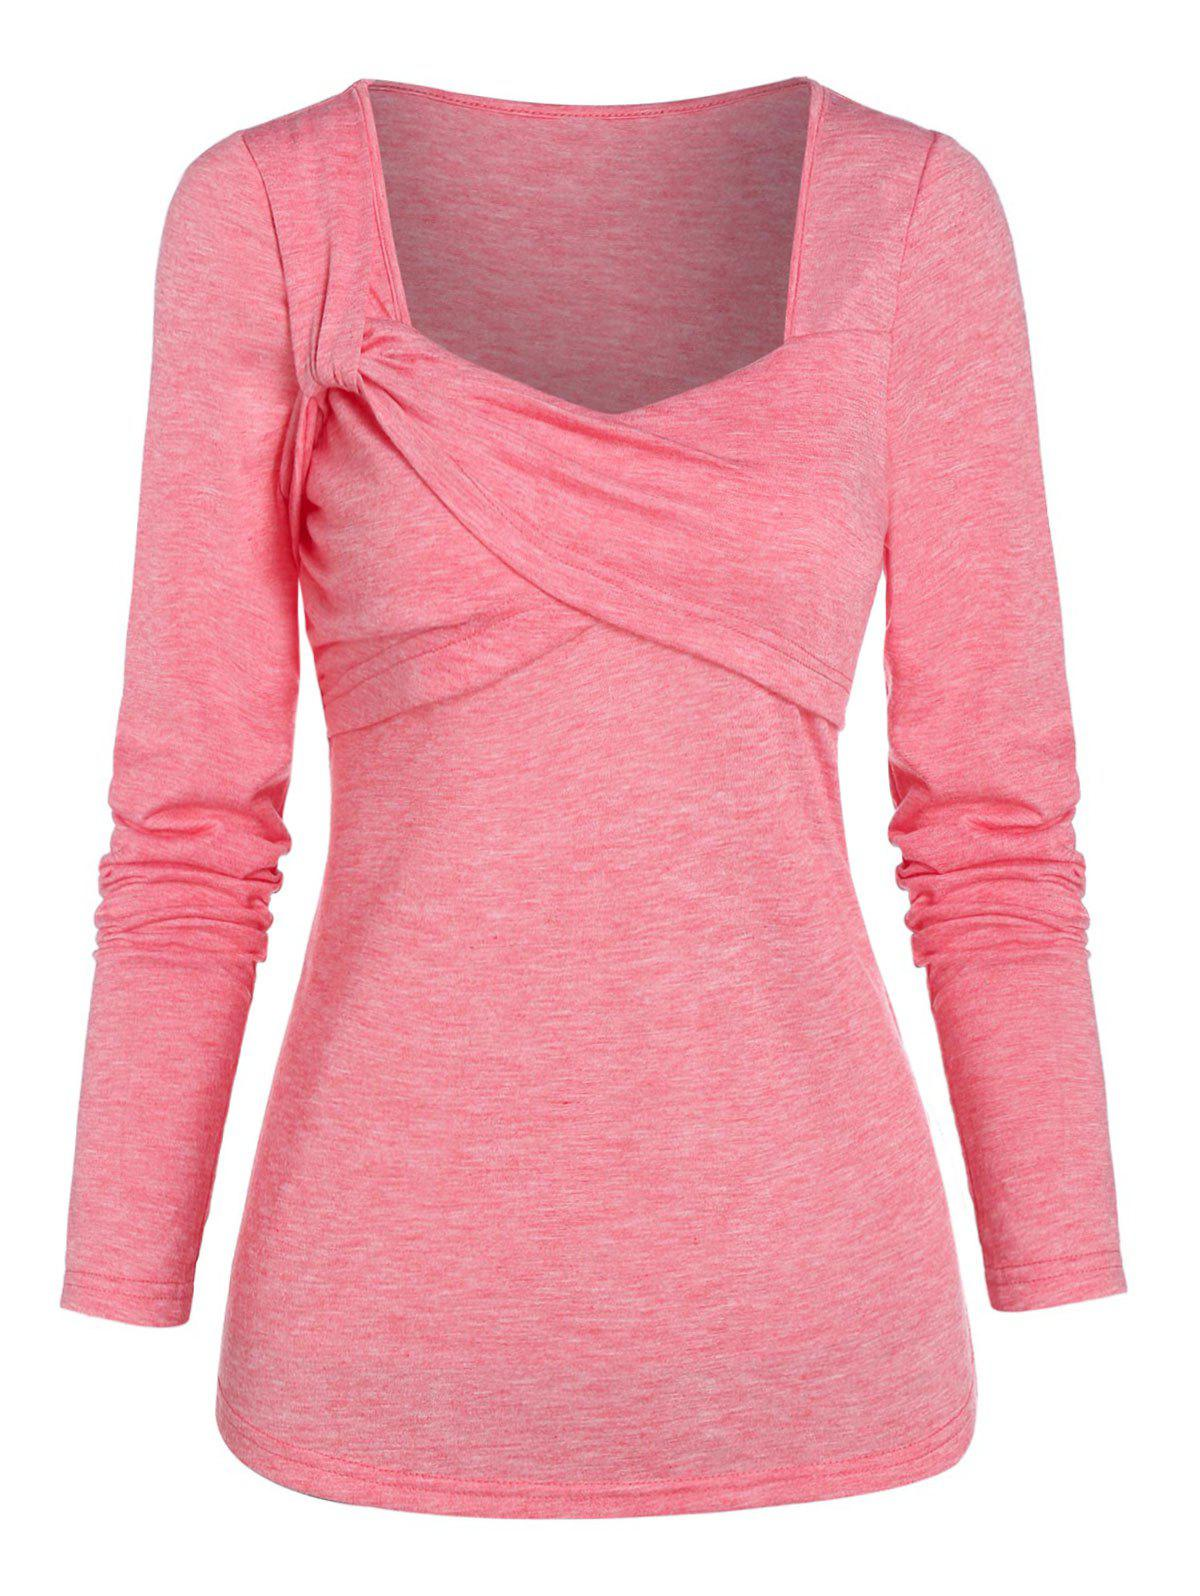 Heathered Twist Crossover T-shirt - PINK XL